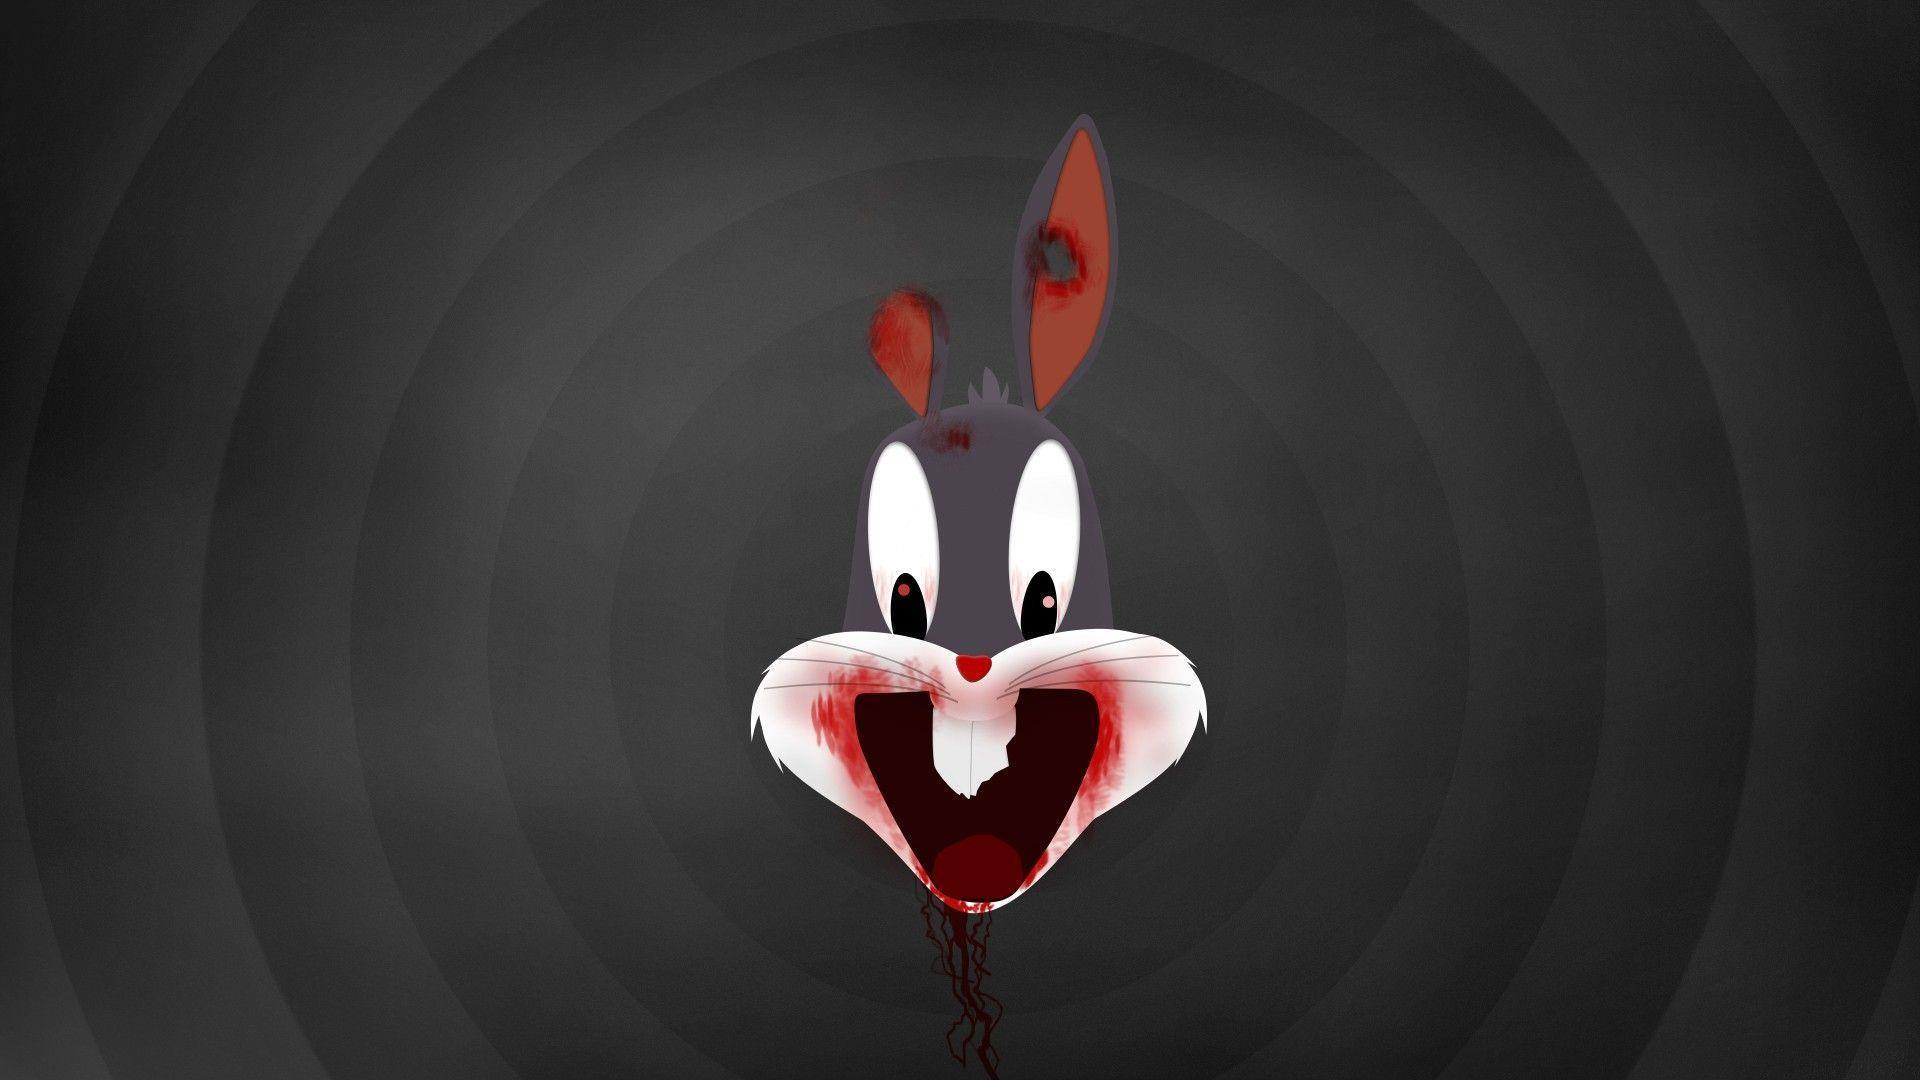 cartoons-zombie-bugs-bunny-wallpaper-HD